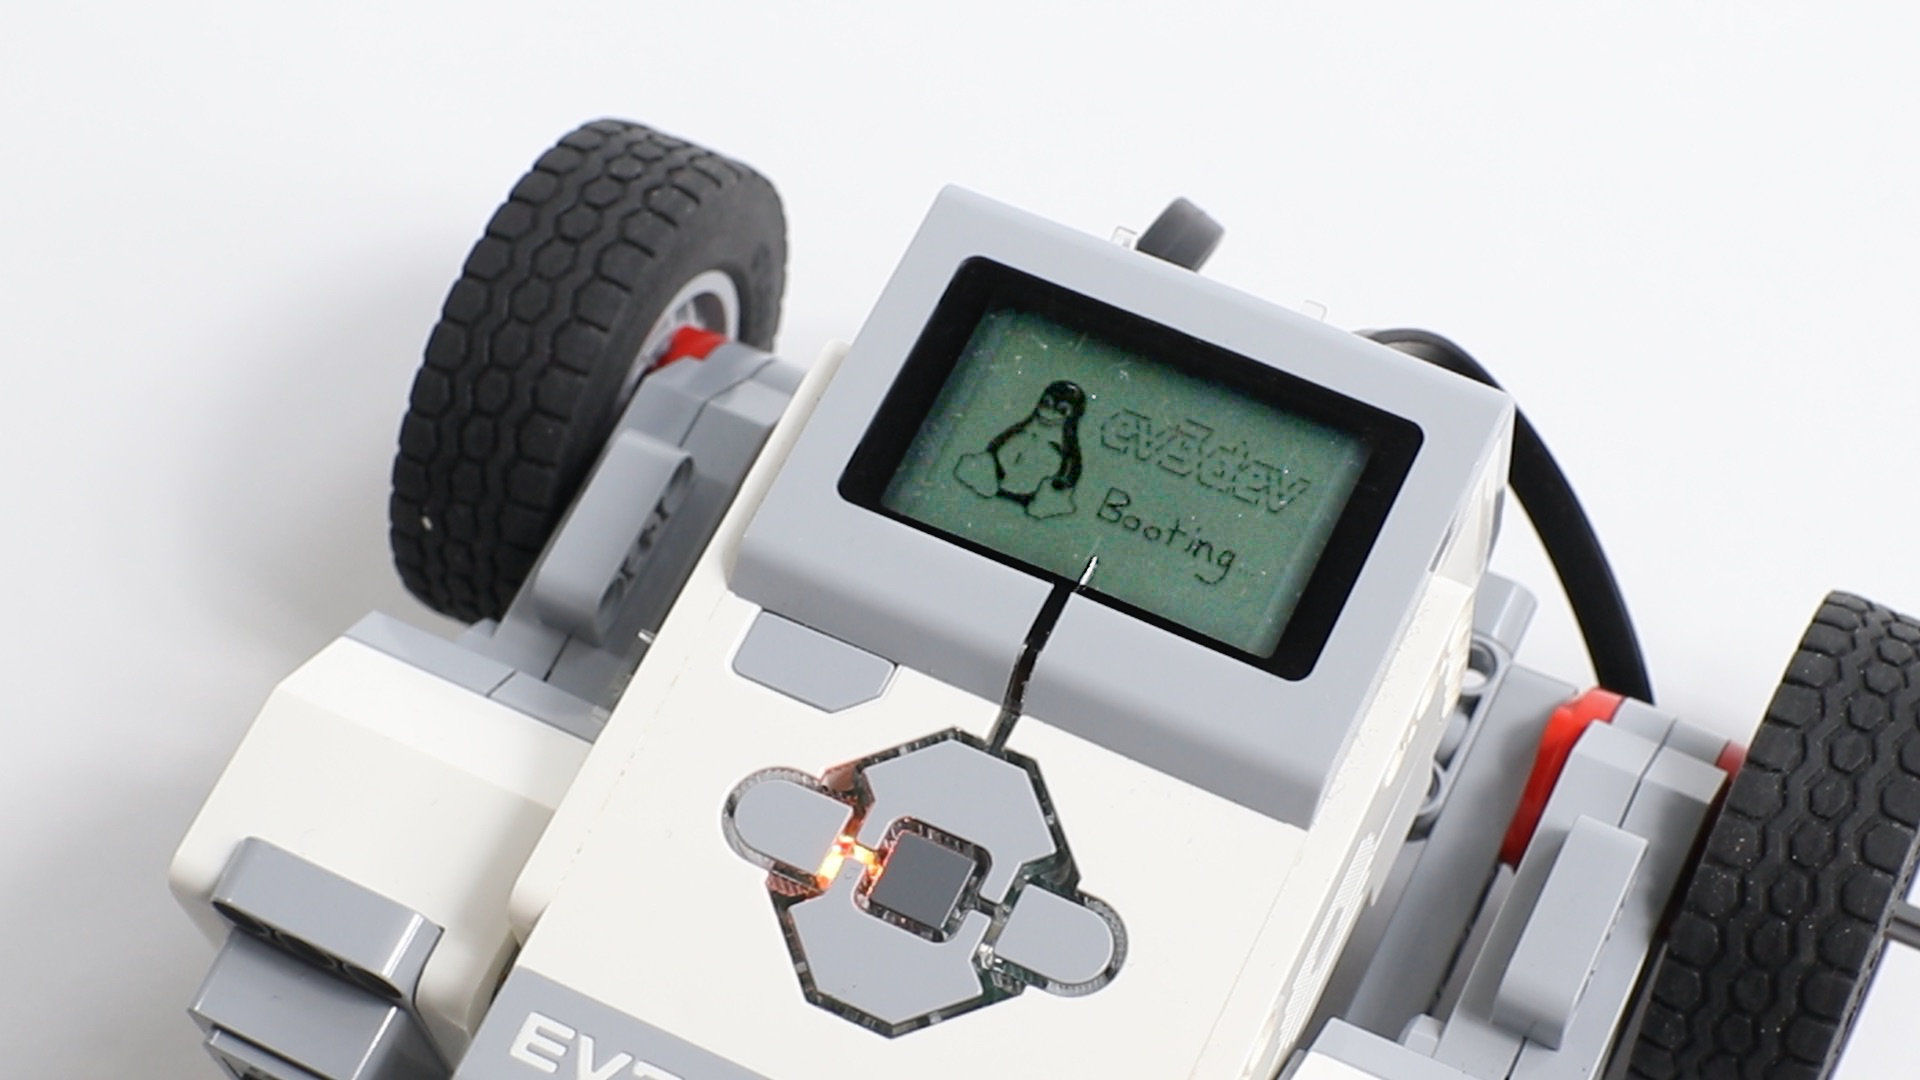 LEGO EV3 running Linux with Python and MicroPython